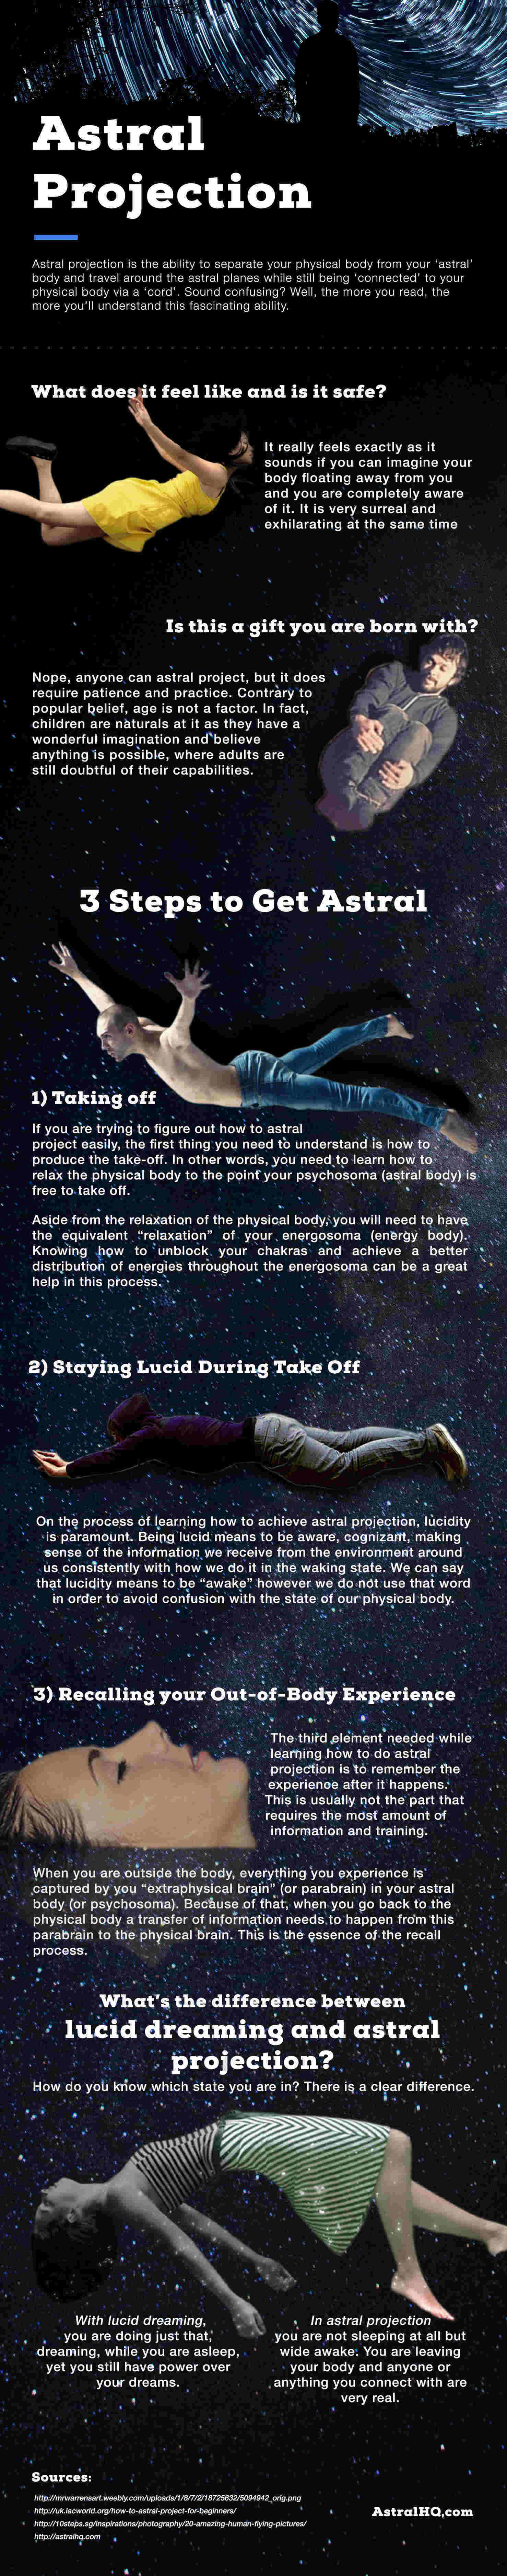 astral projection for beginners The road to mental and spiritual health astral projection for beginners promises amazing experiences and adventures take your time, keep your mind open and you will get there, reaping the benefits of mental strength and spiritual calm.